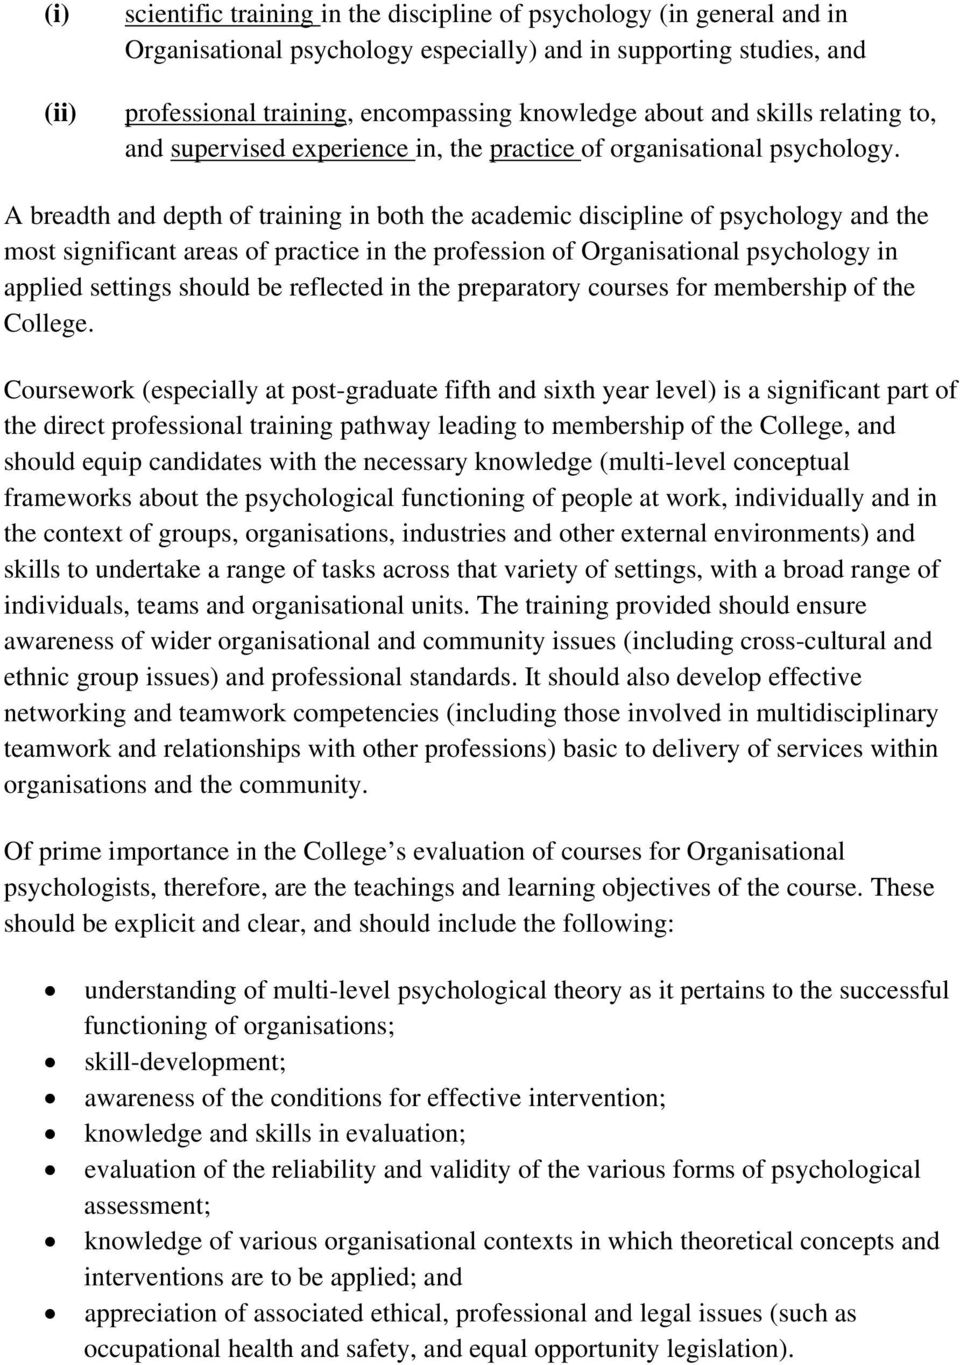 A breadth and depth of training in both the academic discipline of psychology and the most significant areas of practice in the profession of Organisational psychology in applied settings should be